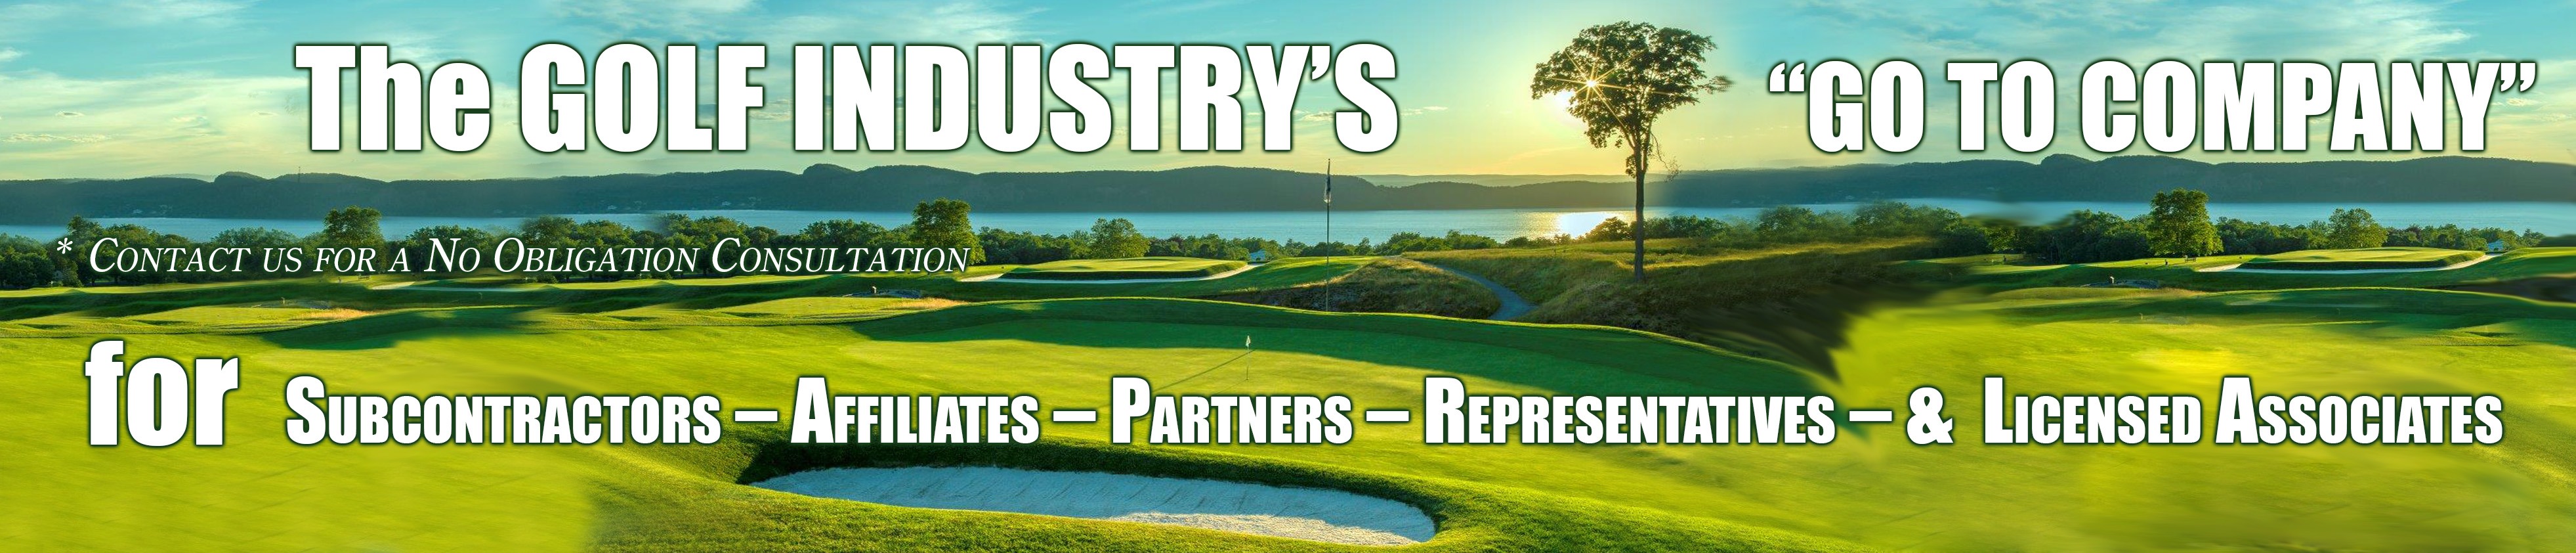 Commissions Representatives Hole in One Insurance Ideas